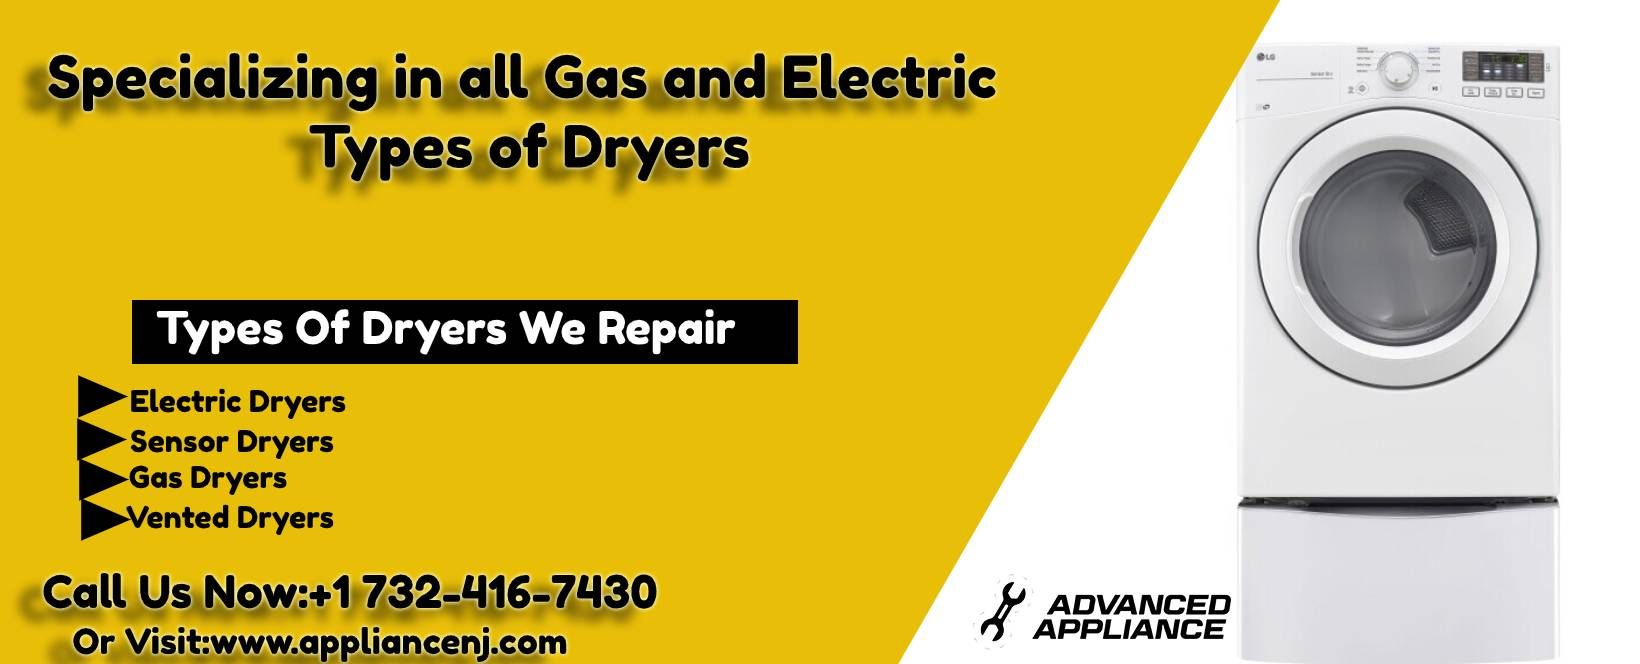 Dryer Repair Service In Monmouth Middlesex Counties Nj With Images Appliance Repair Repair Gas And Electric